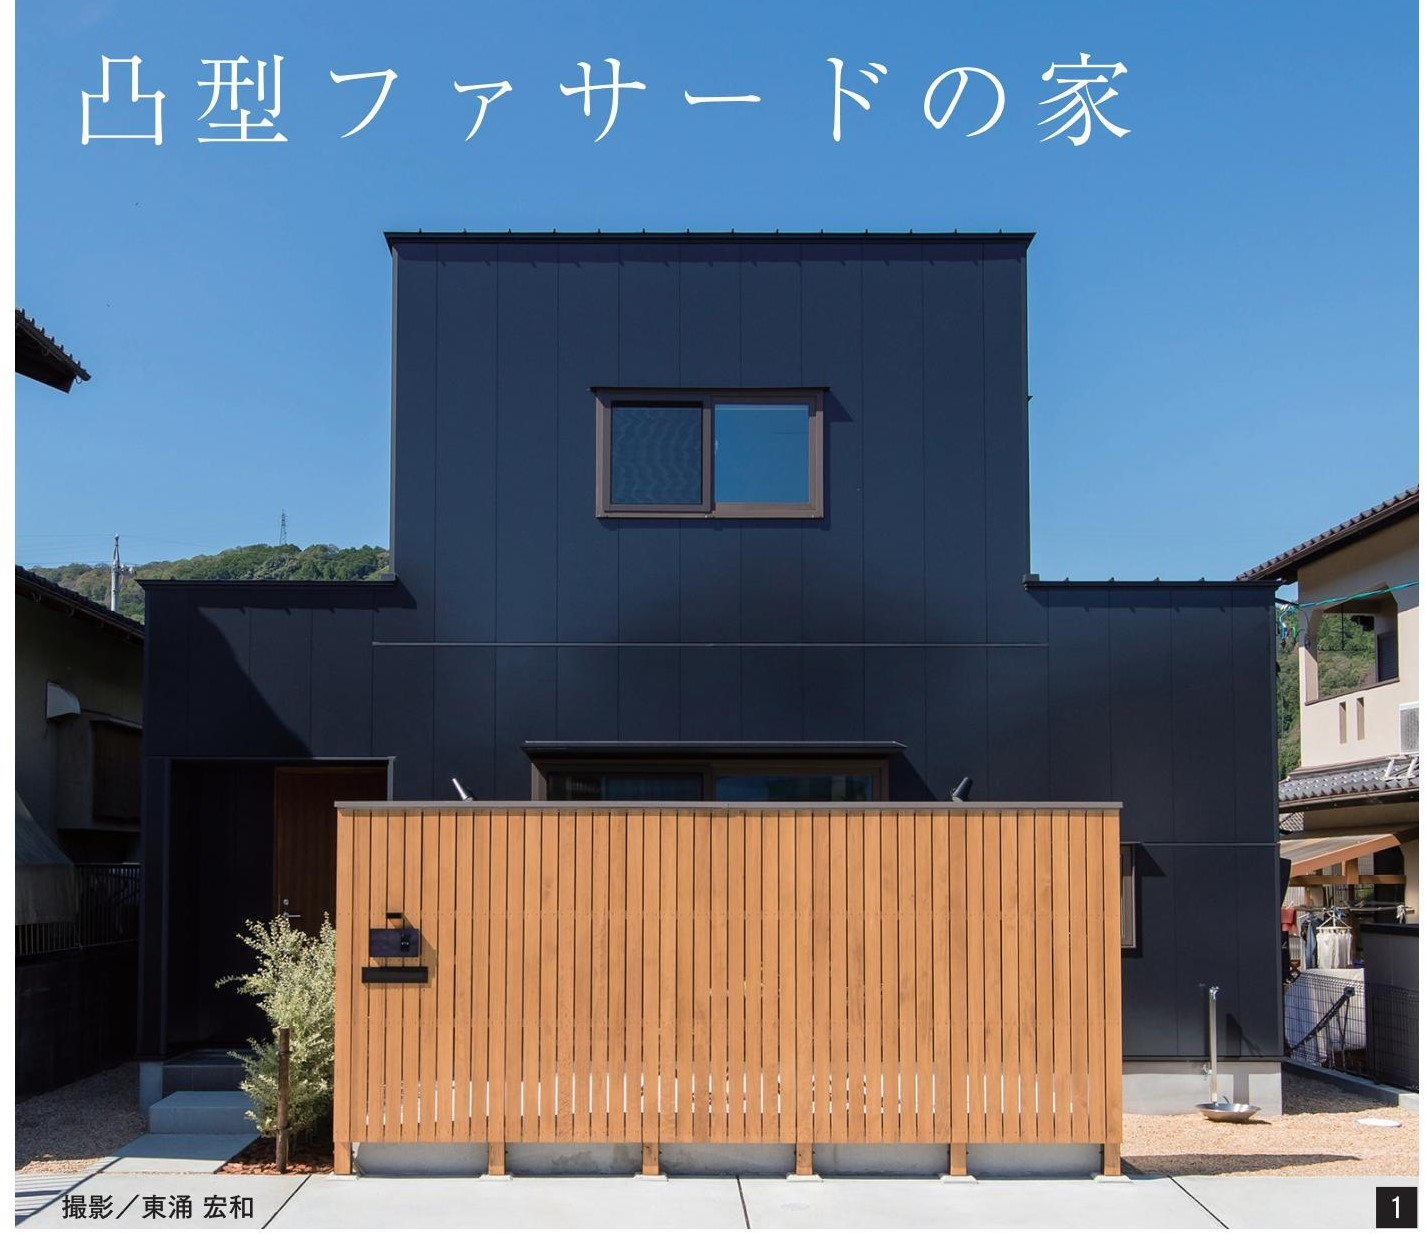 R+house住宅のデザインを探る 建築家:宮武淳夫 先生